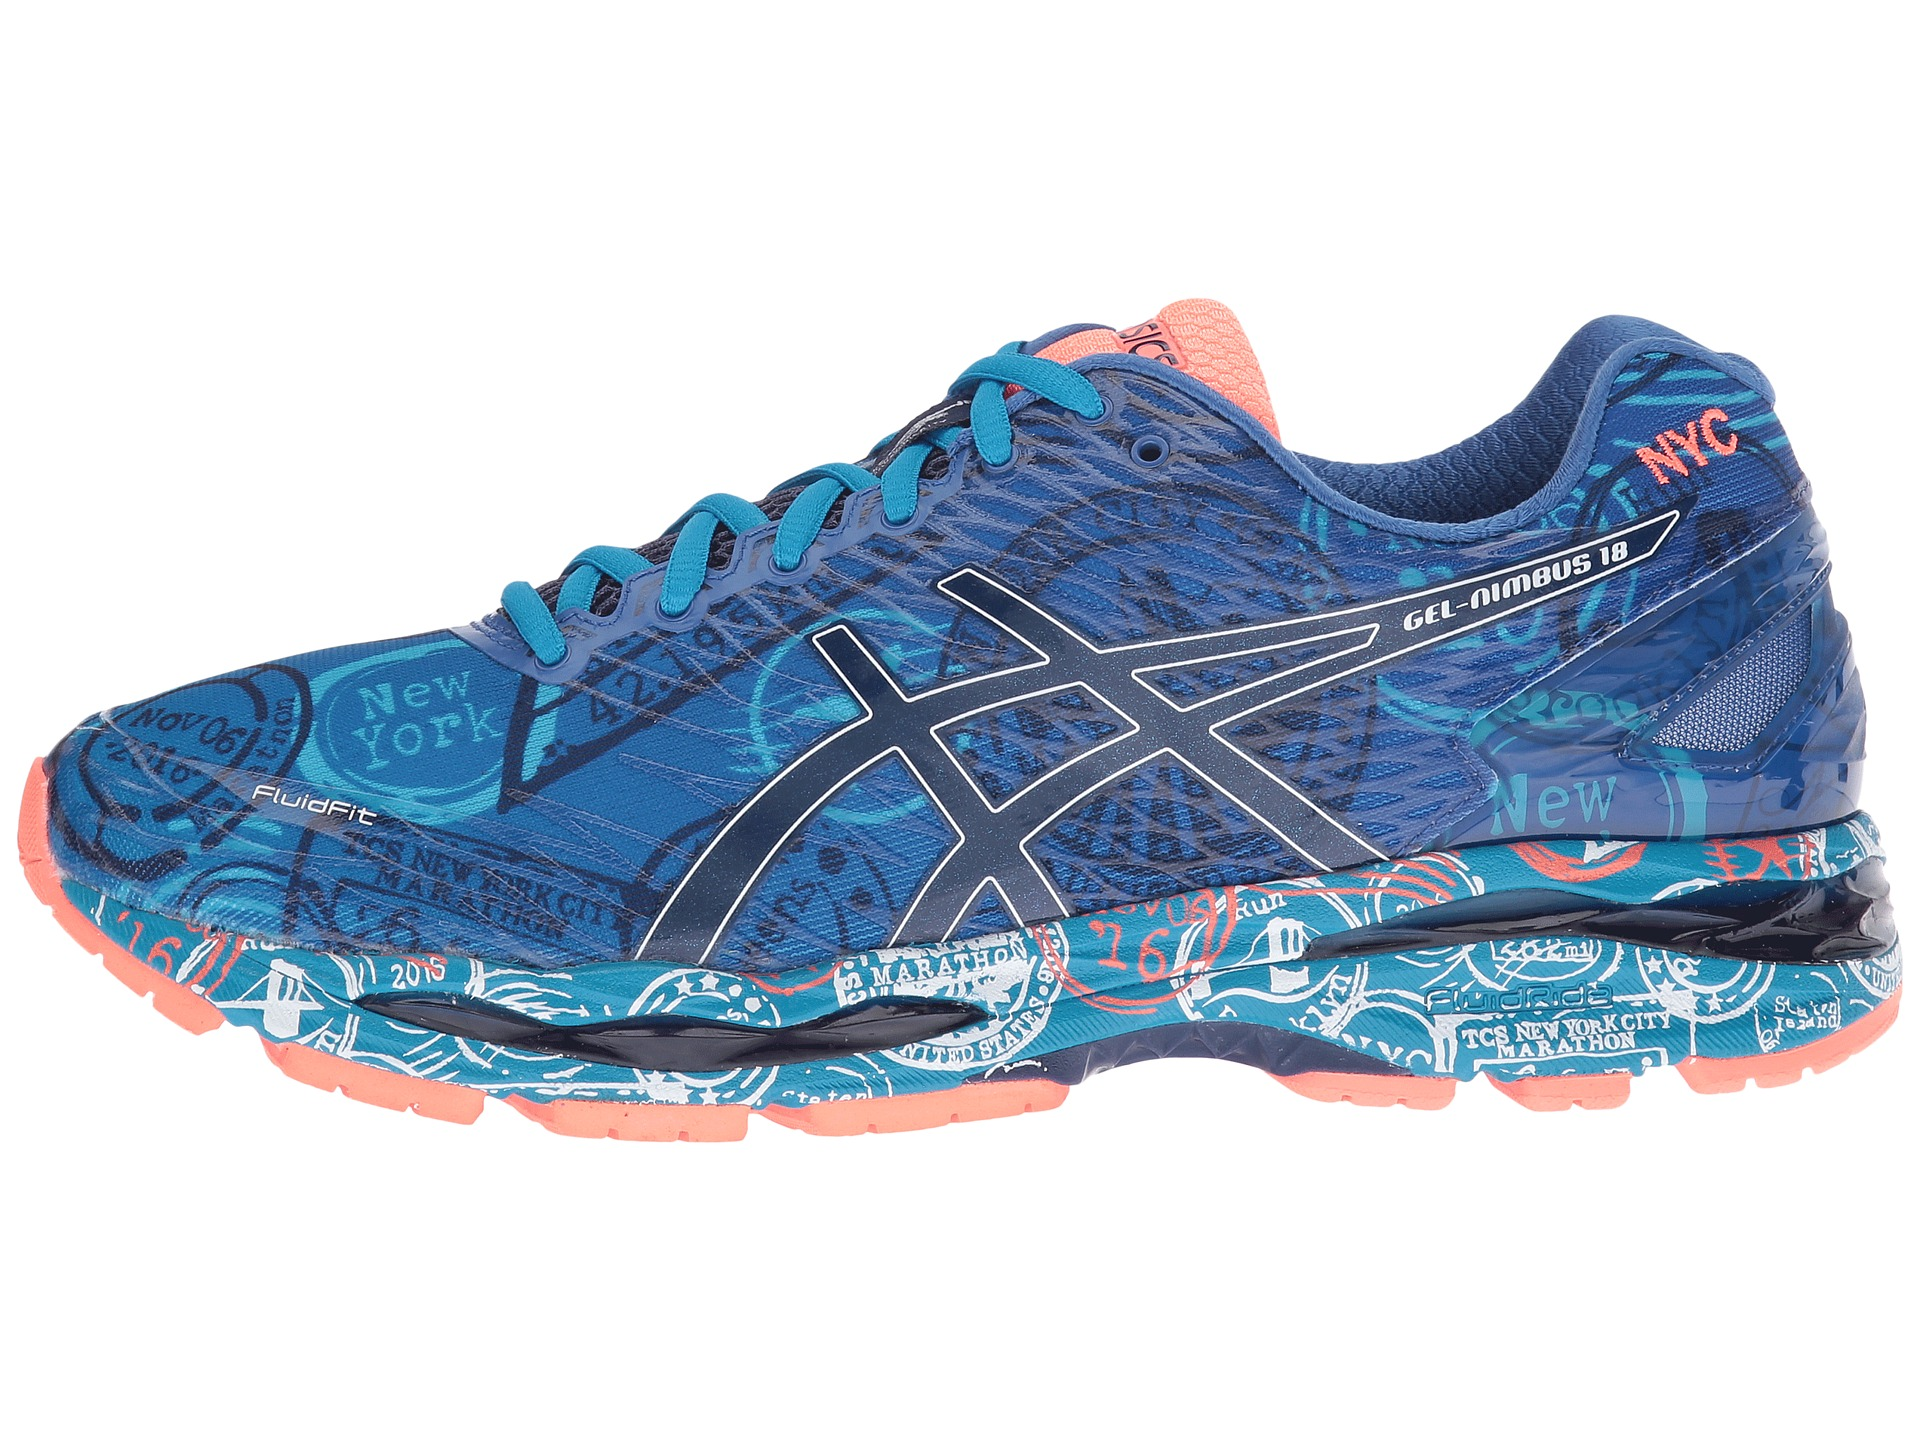 asics gel nimbus 18 nyc run new york free. Black Bedroom Furniture Sets. Home Design Ideas